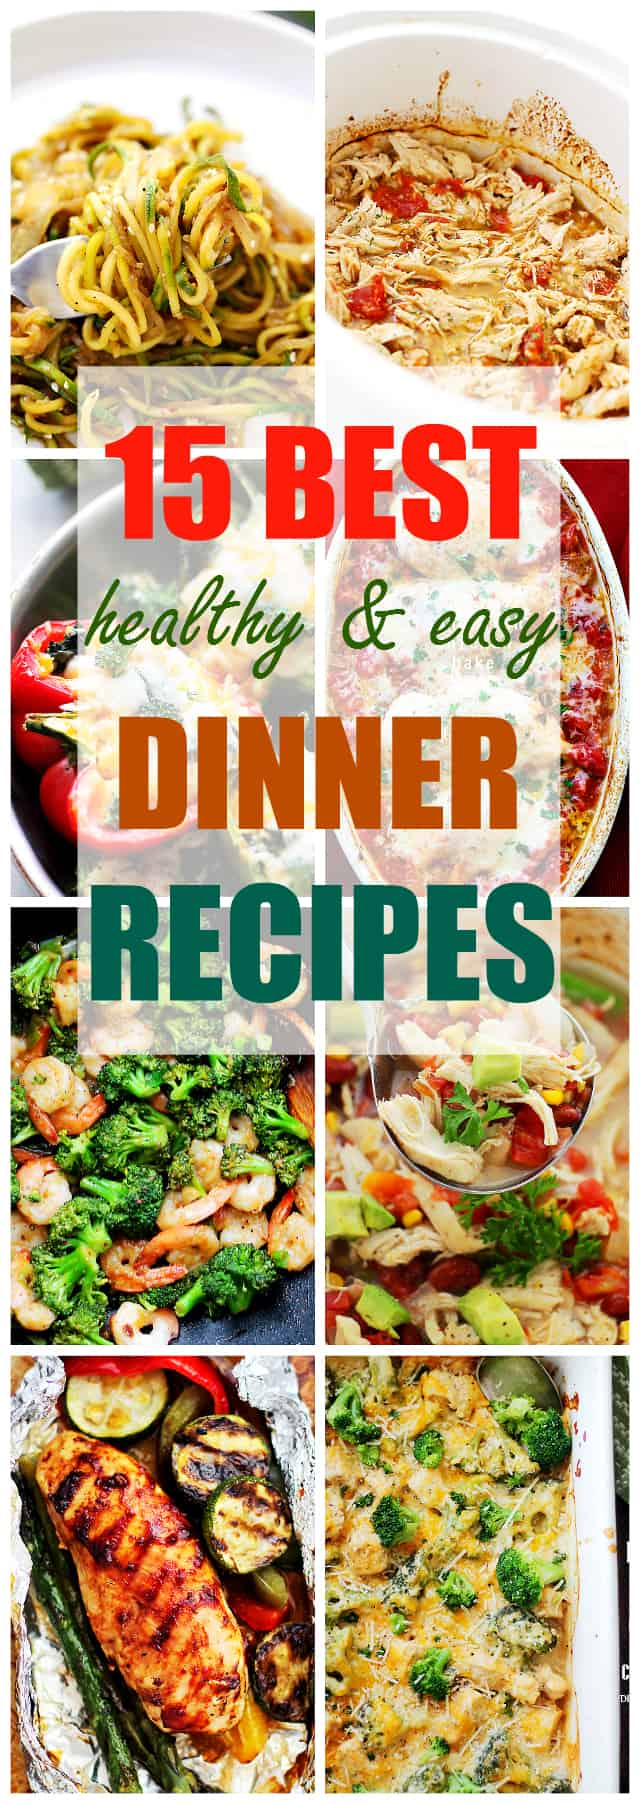 15 Best Healthy and Easy Dinner Recipes